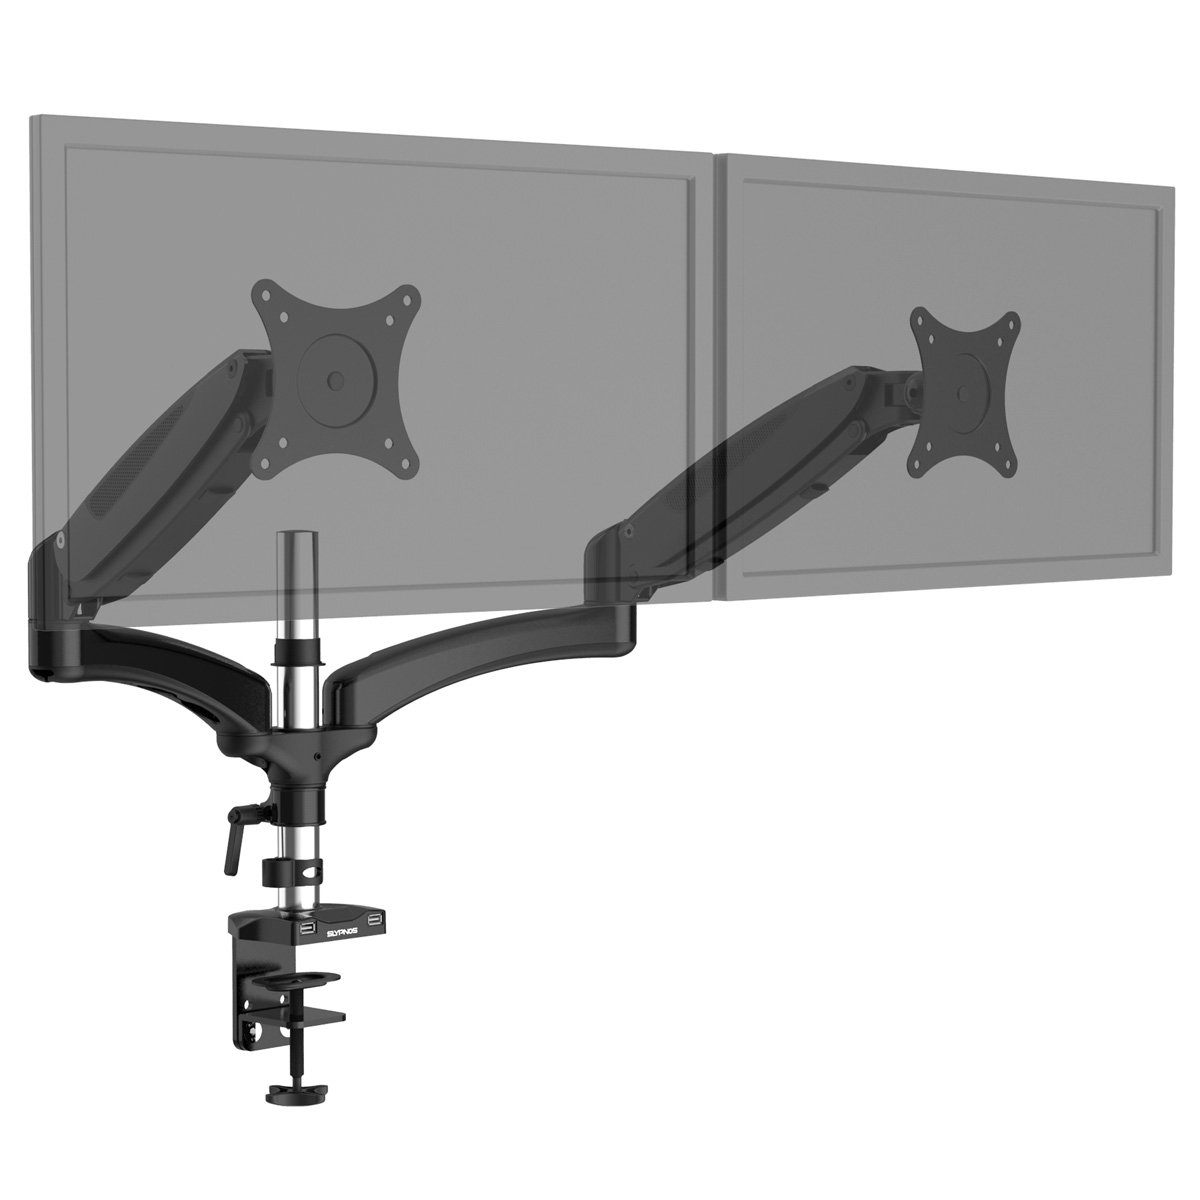 SLYPNOS Triple Monitor Desk Mount Arm/Stand, Height Adjustable Gas Spring Arms, Fits from 15 Inch to 27 Inch Screens